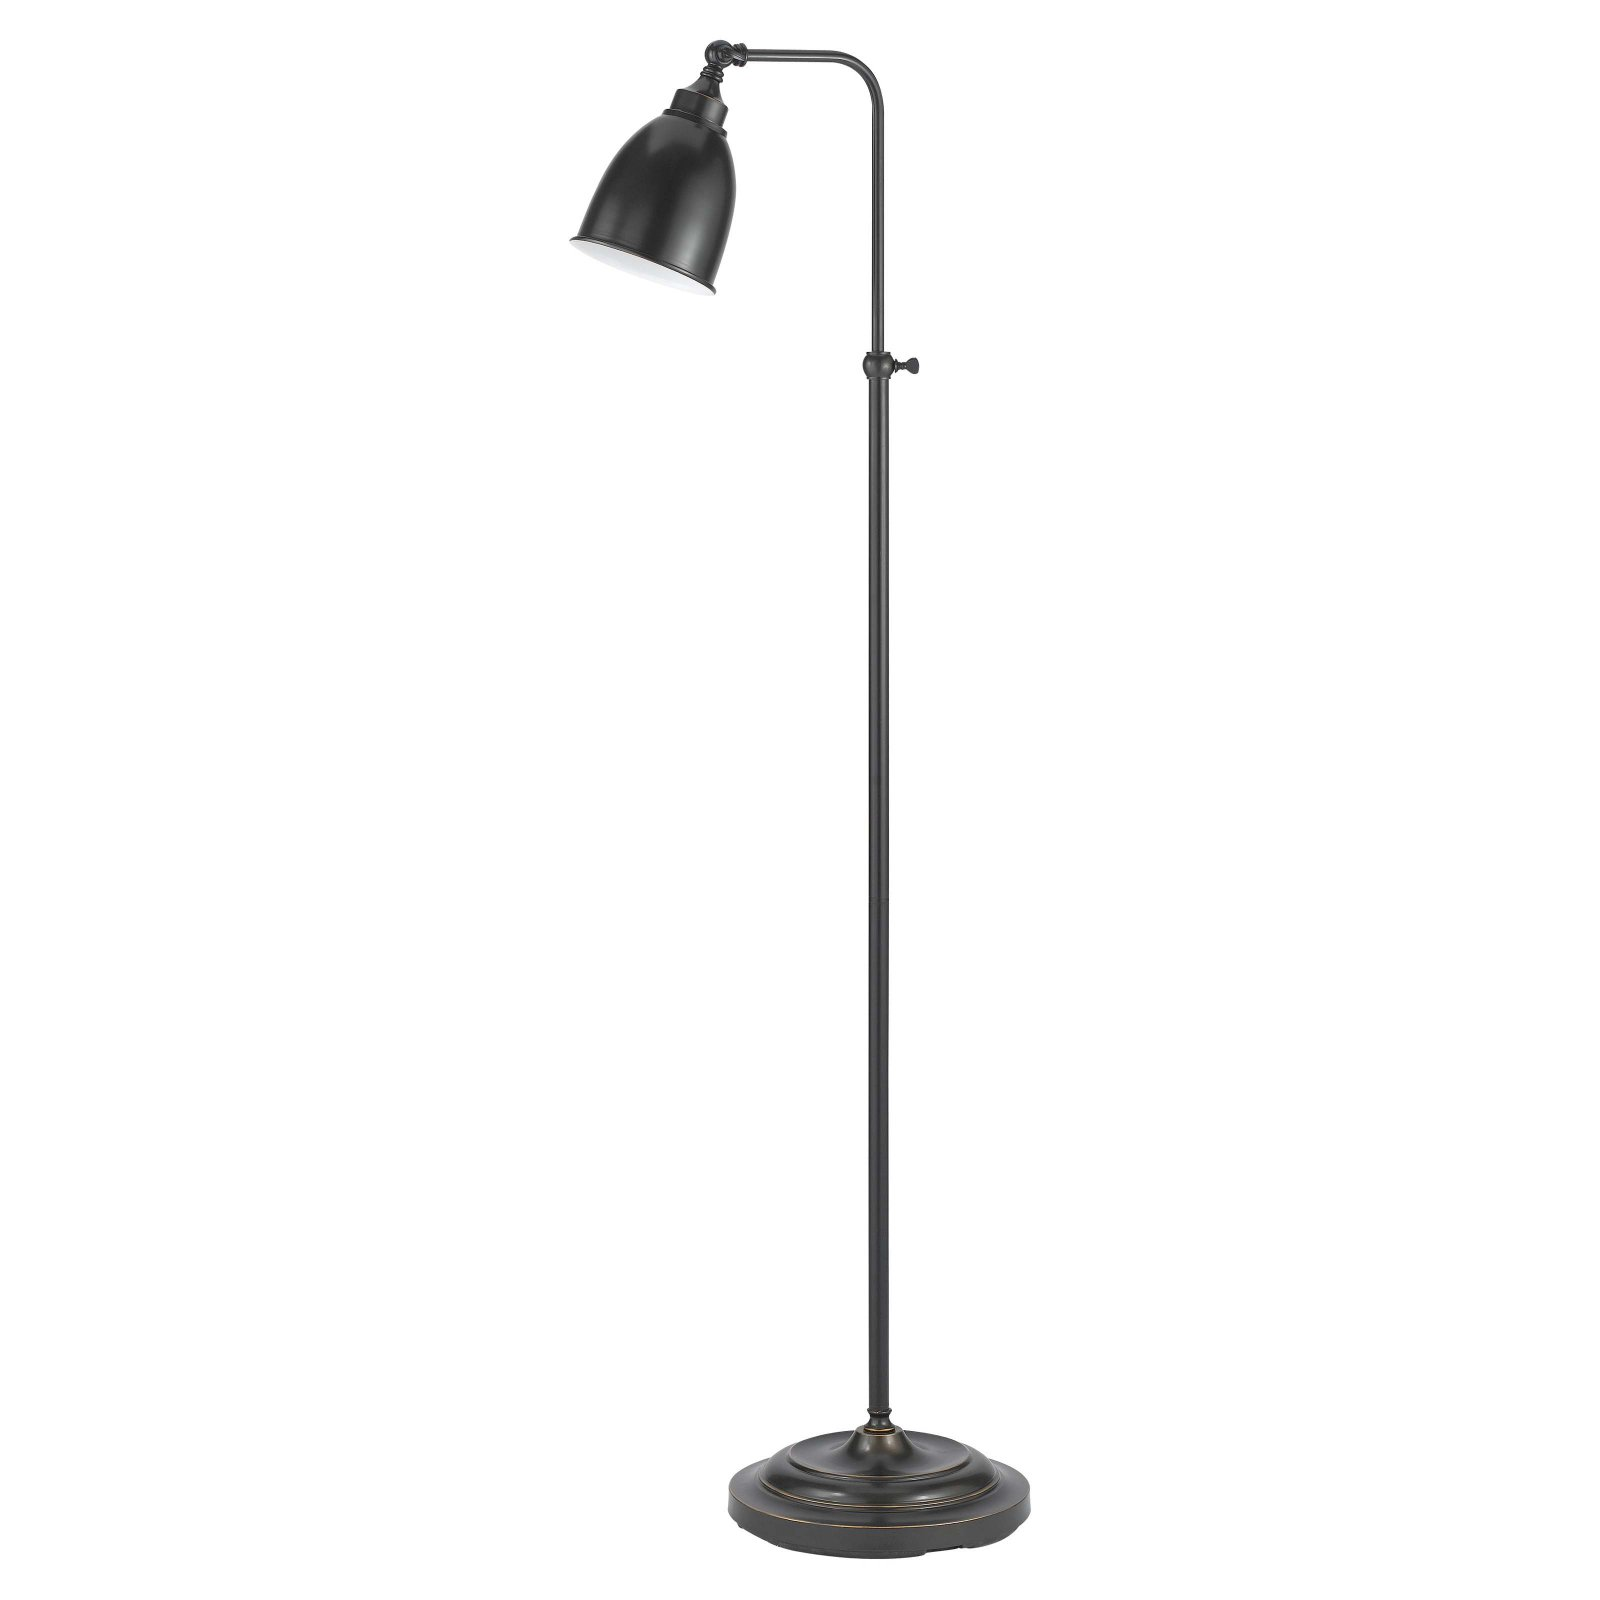 Cal Lighting BO-2032FL Pharmacy Floor Lamp with Adjustable Pole by CAL Lighting